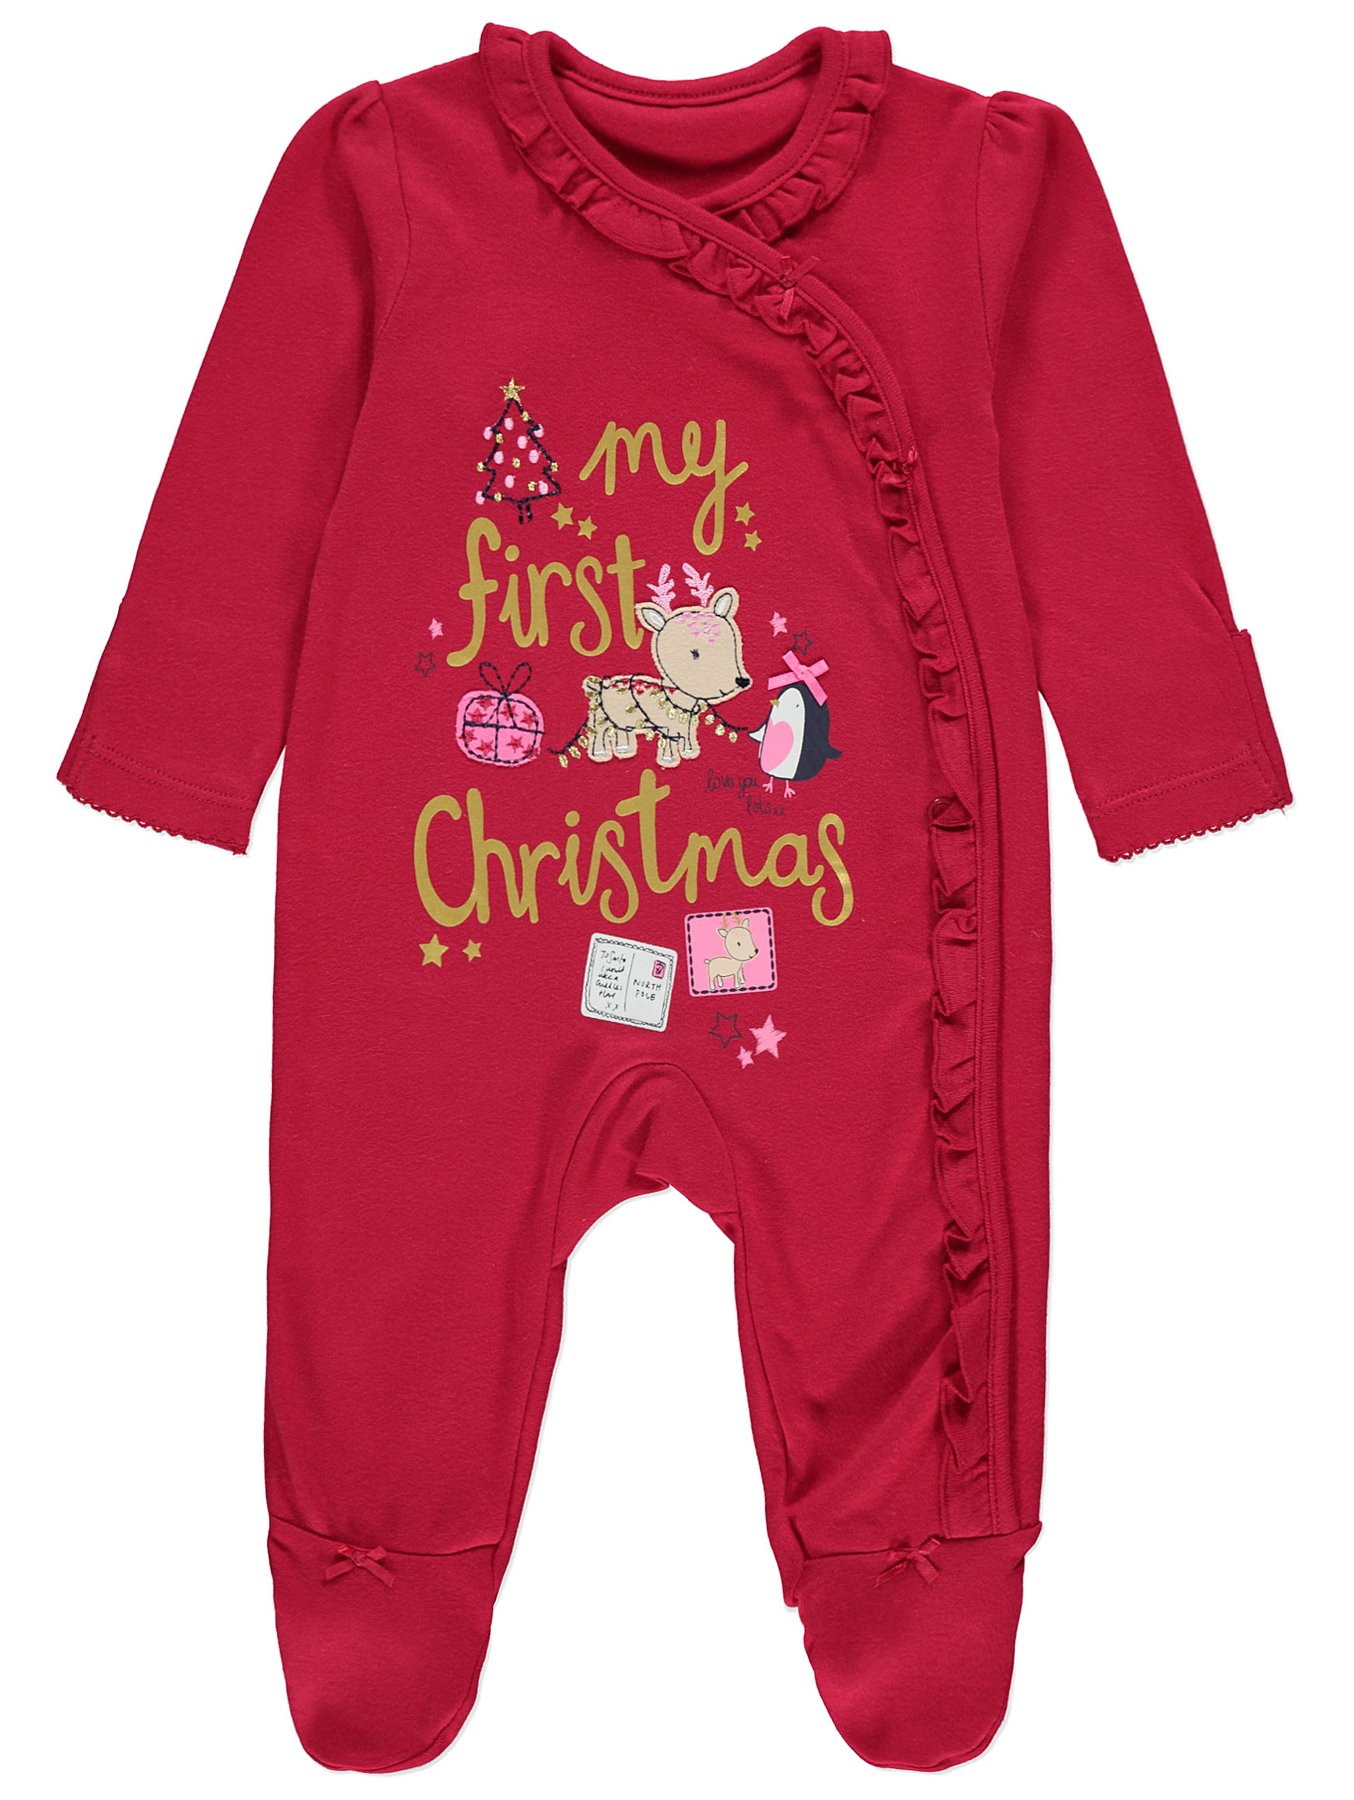 My First Christmas.Red My First Christmas Sleepsuit